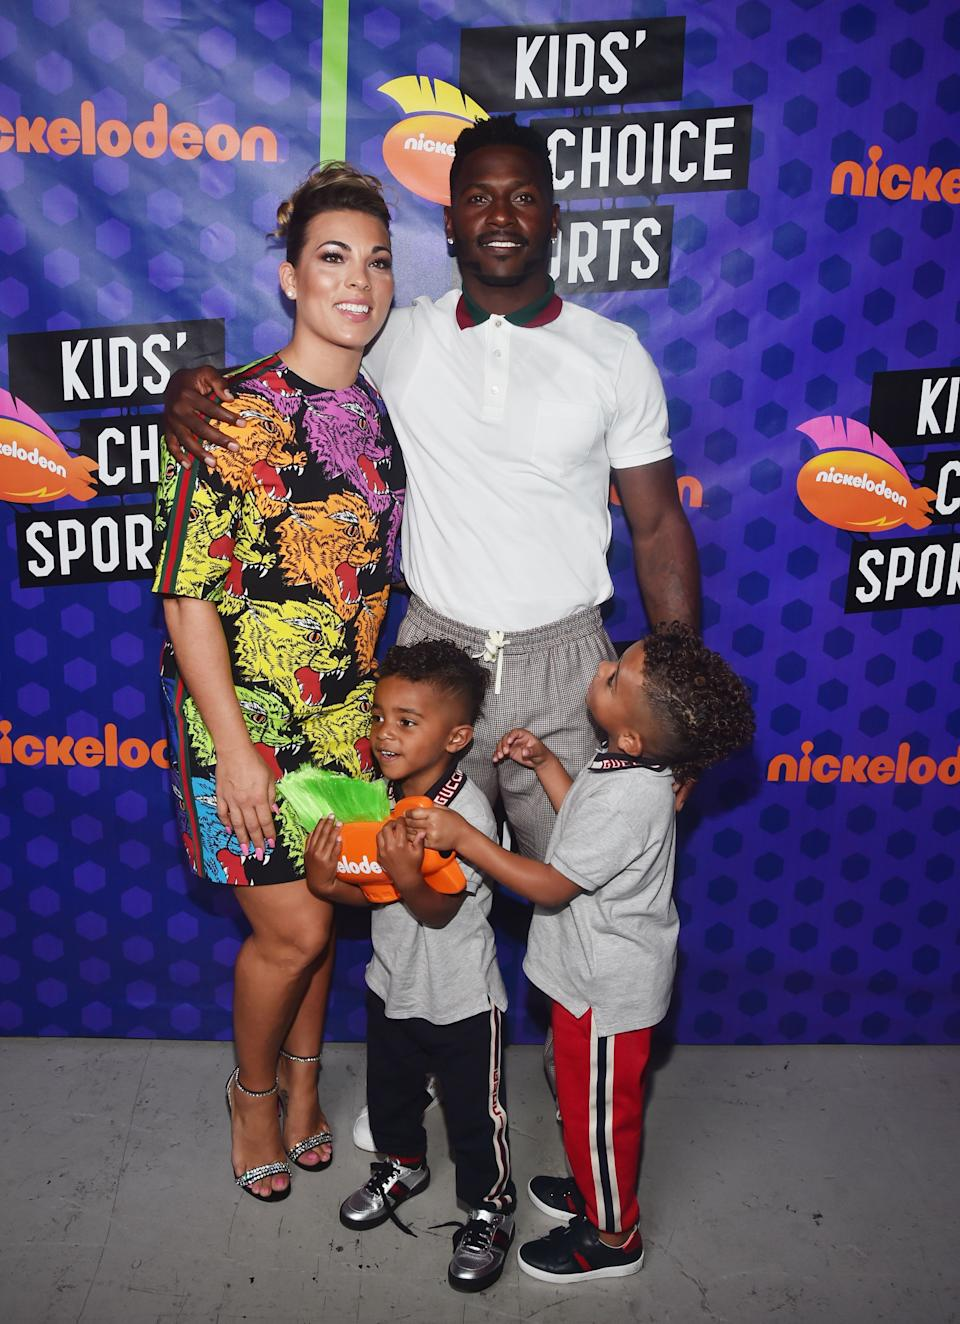 An amazing photo of Antonio Brown in a white T-shirt and grey track-suit with his ex-girlfriend, Chelsie Kyriss  in a multicolored dress and two of his sons in T-shirts and tracksuits